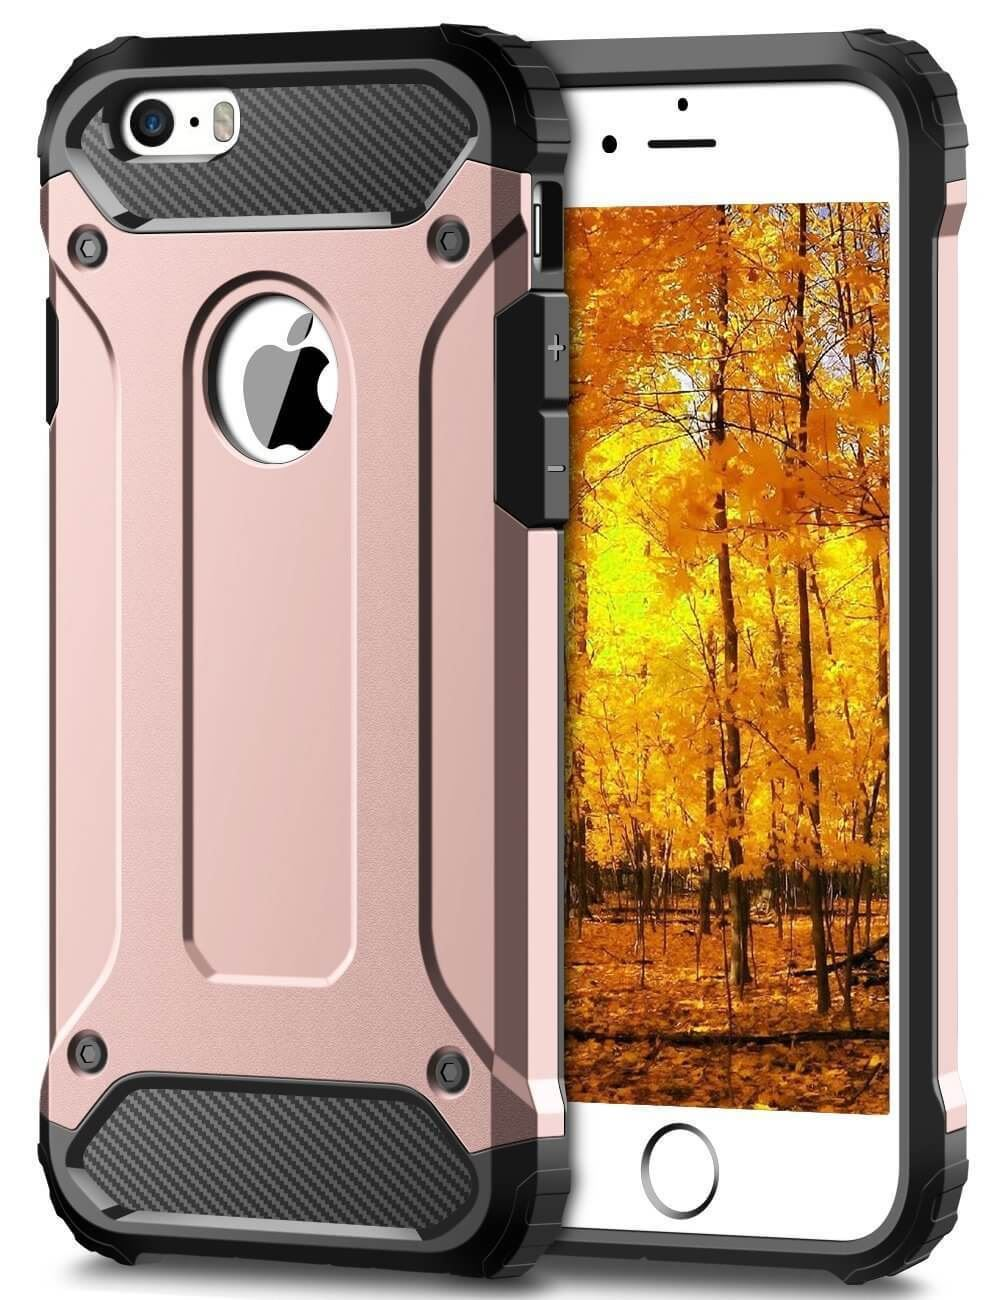 Hybrid-Armor-Shockproof-Rugged-Bumper-Case-For-Apple-iPhone-10-X-8-7-Plus-6s-5s miniature 39